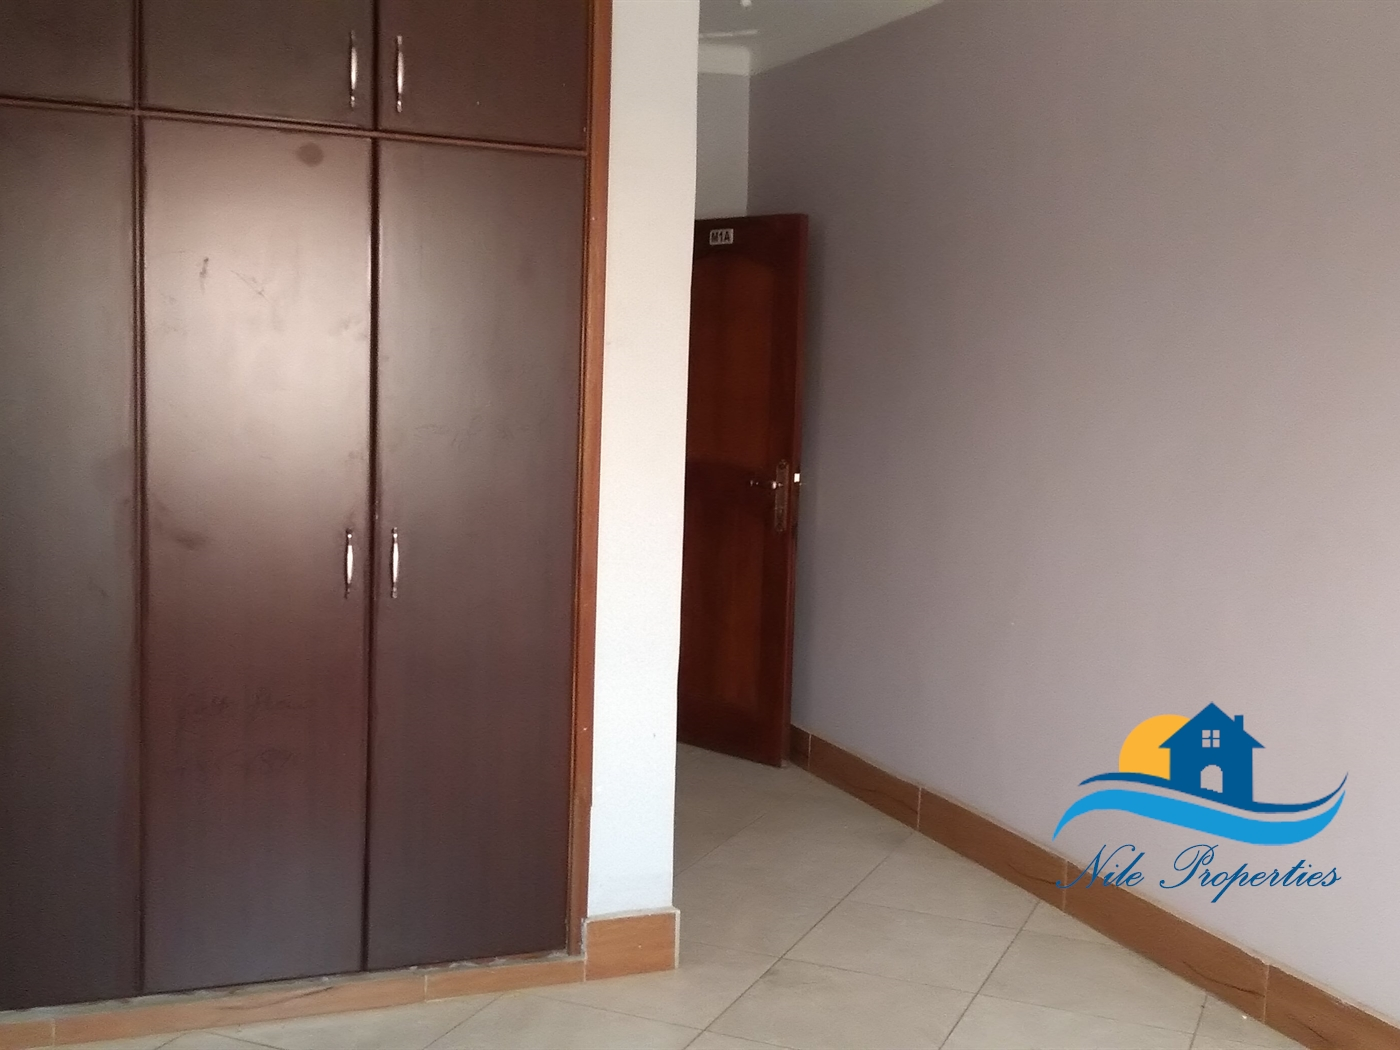 Apartment block for rent in Masese Jinja